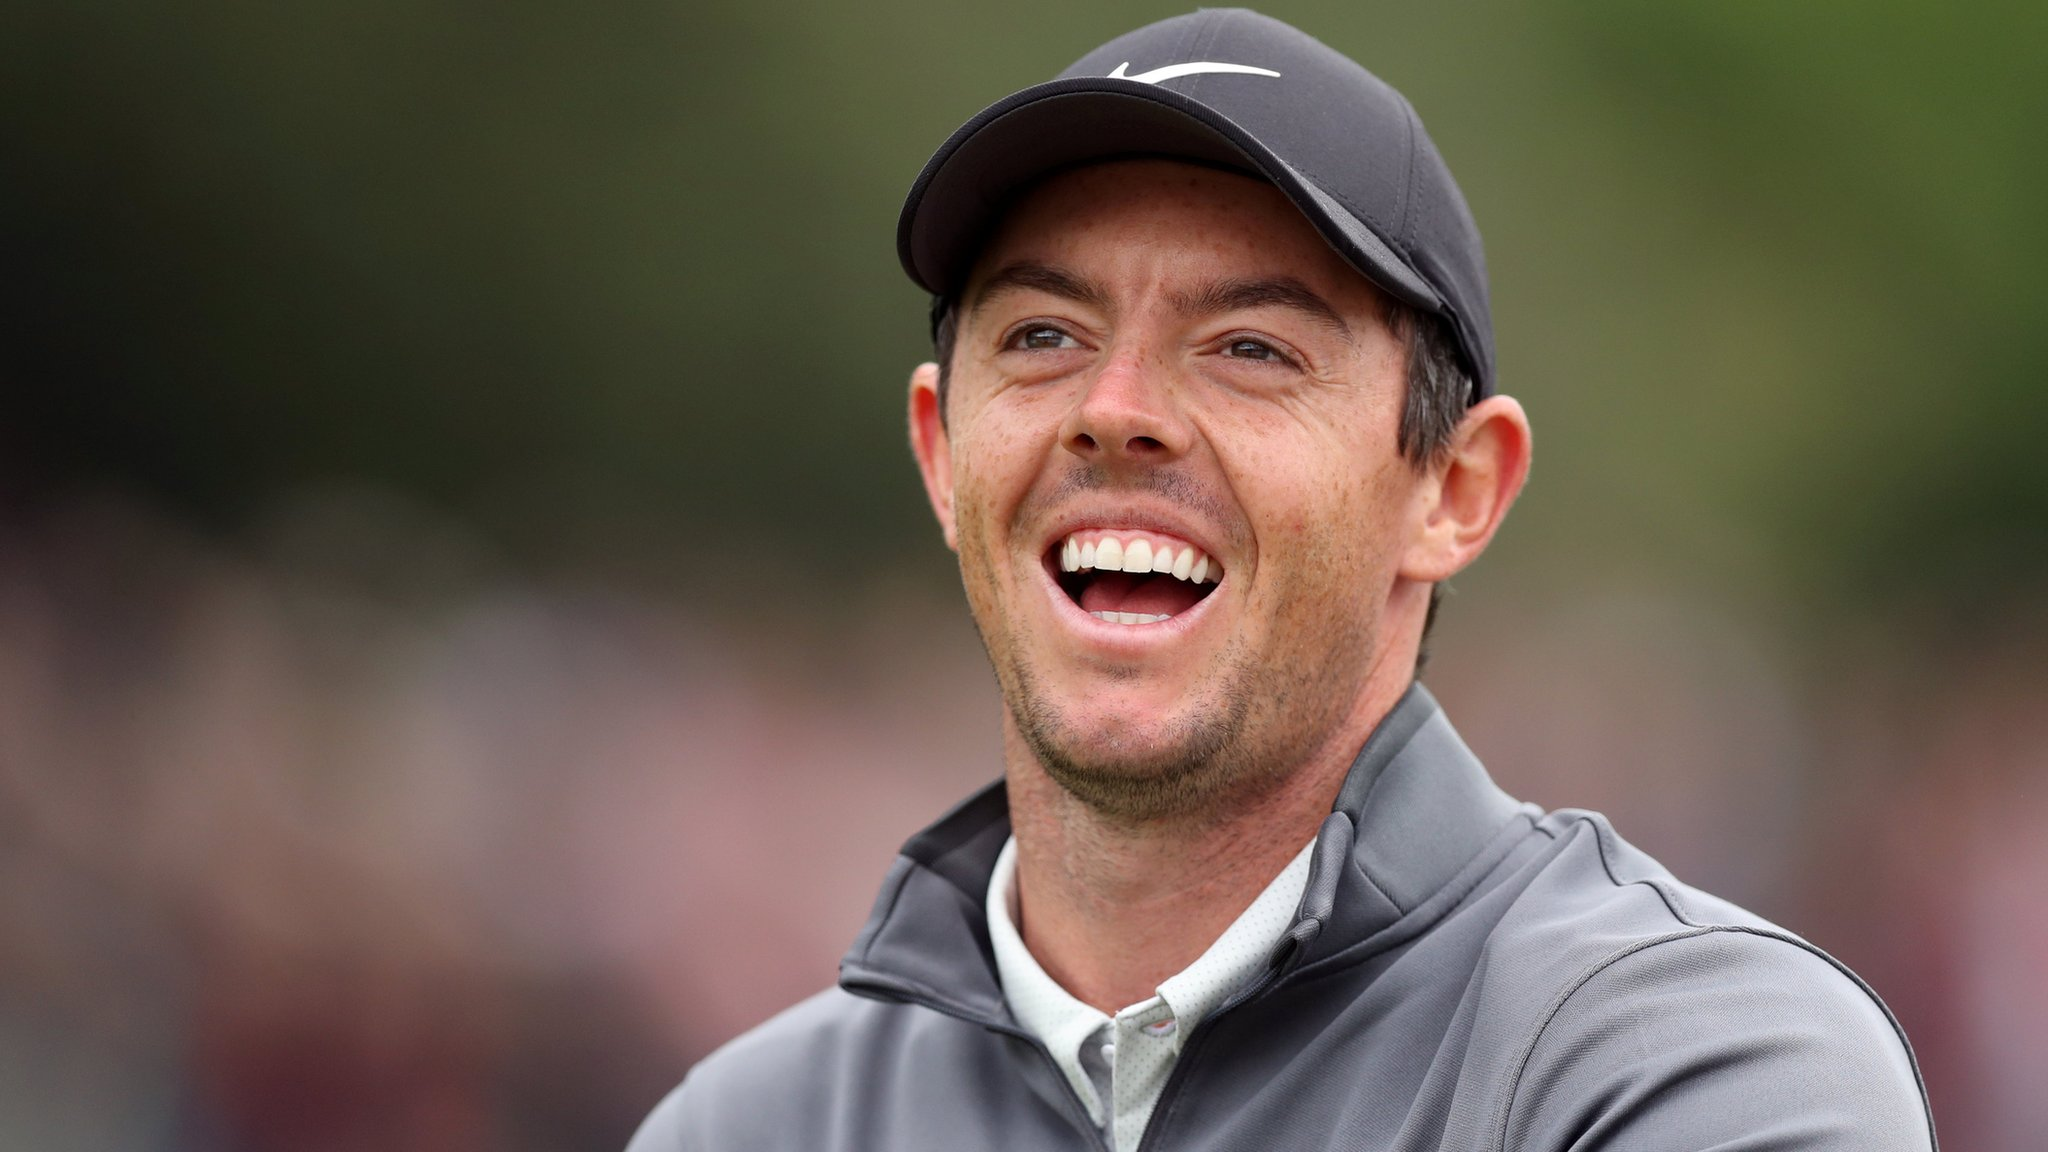 McIlroy shoots 65 to take control at PGA Championship